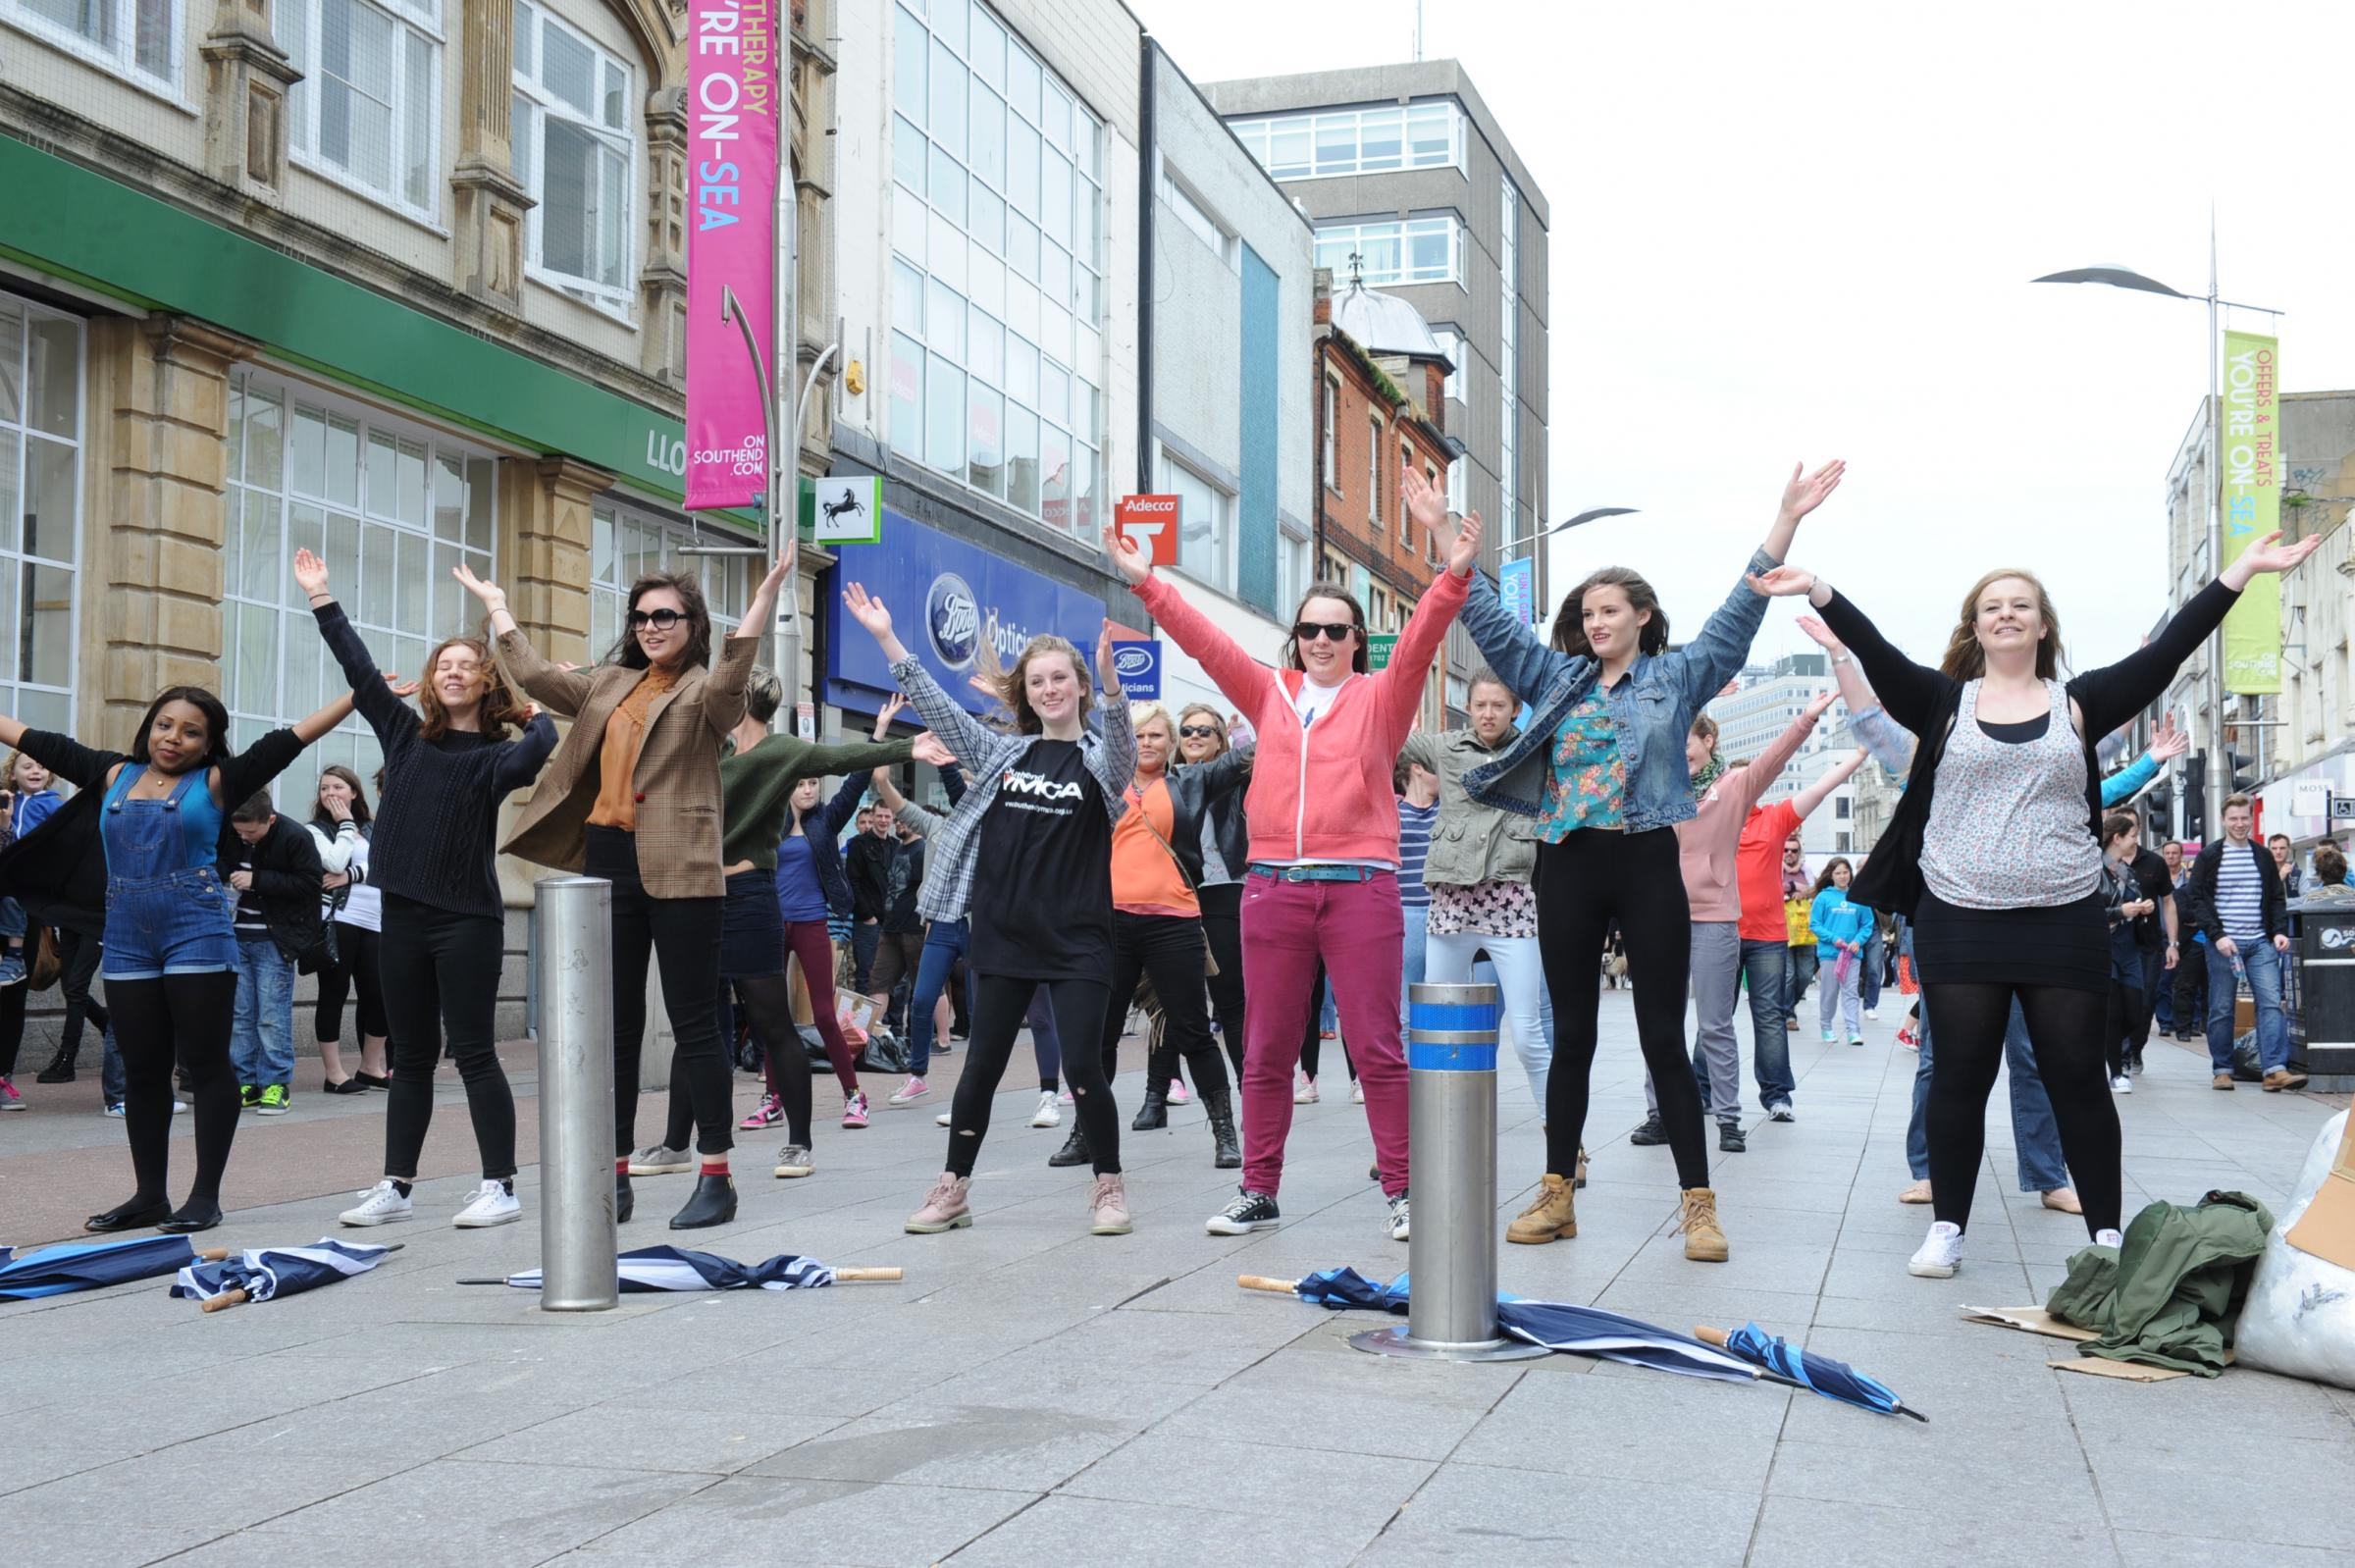 Flash mob celebrate 20 years at the top